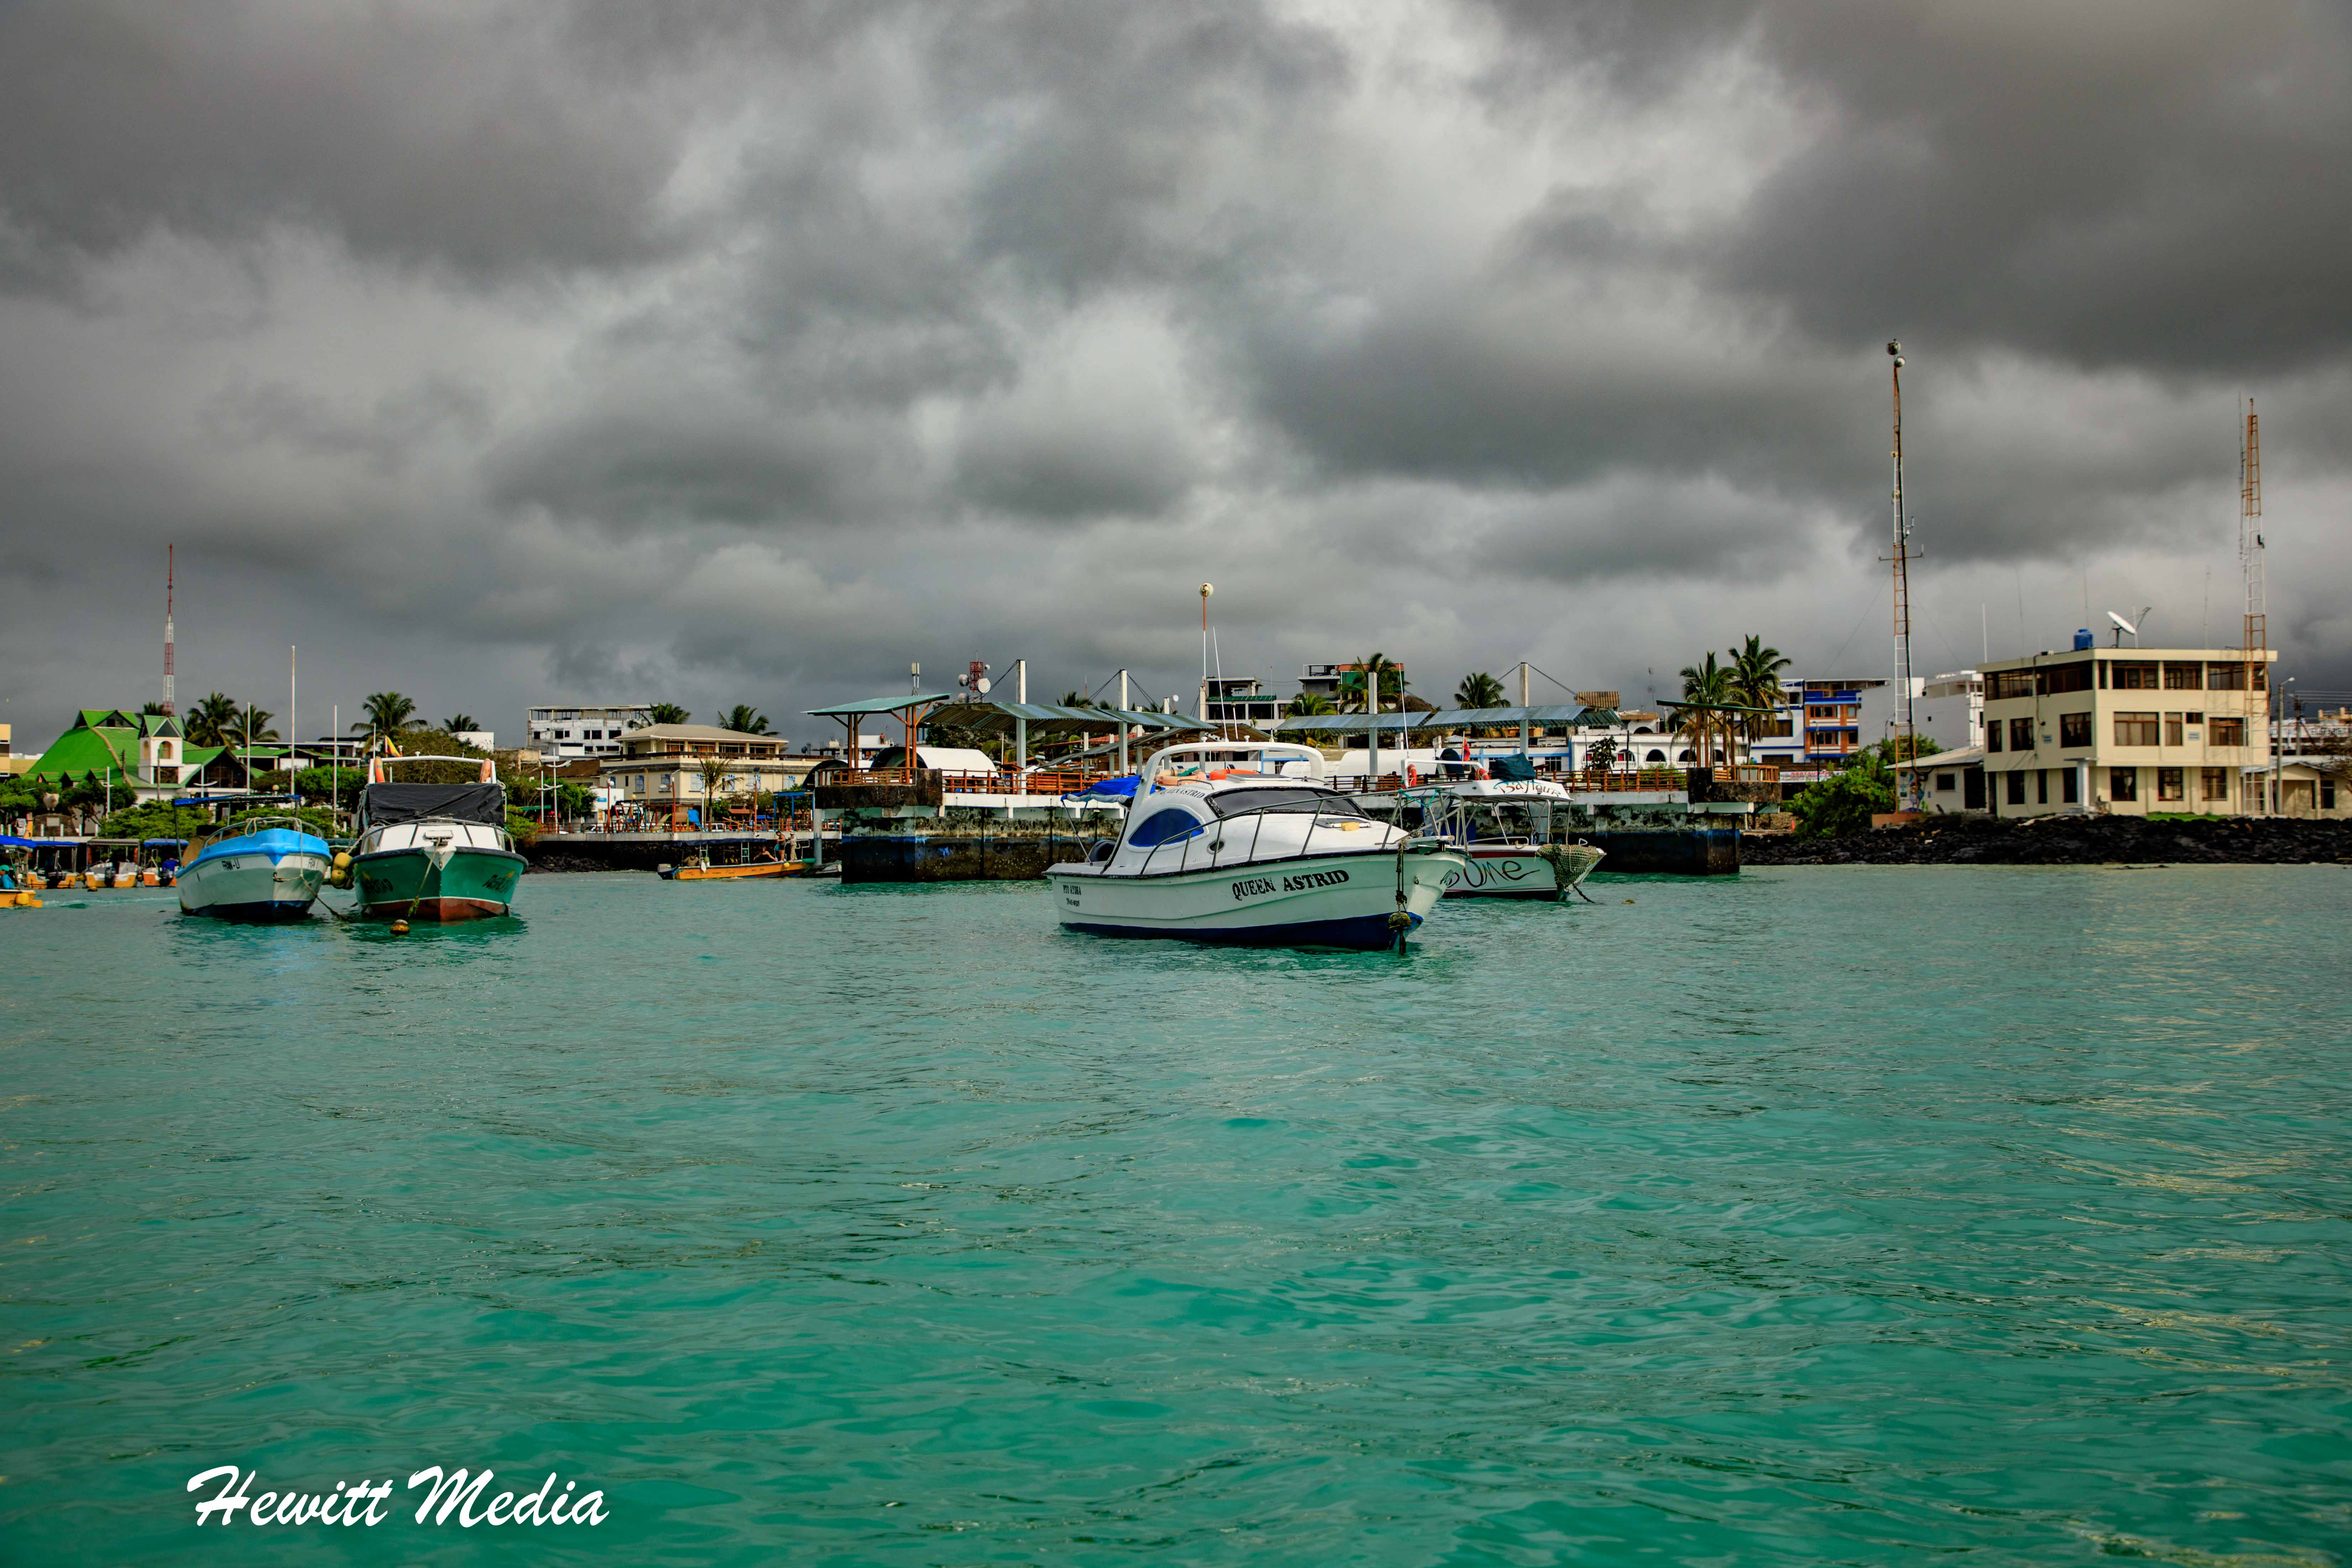 Clouds roll in as we head out for a snorkeling adventure.